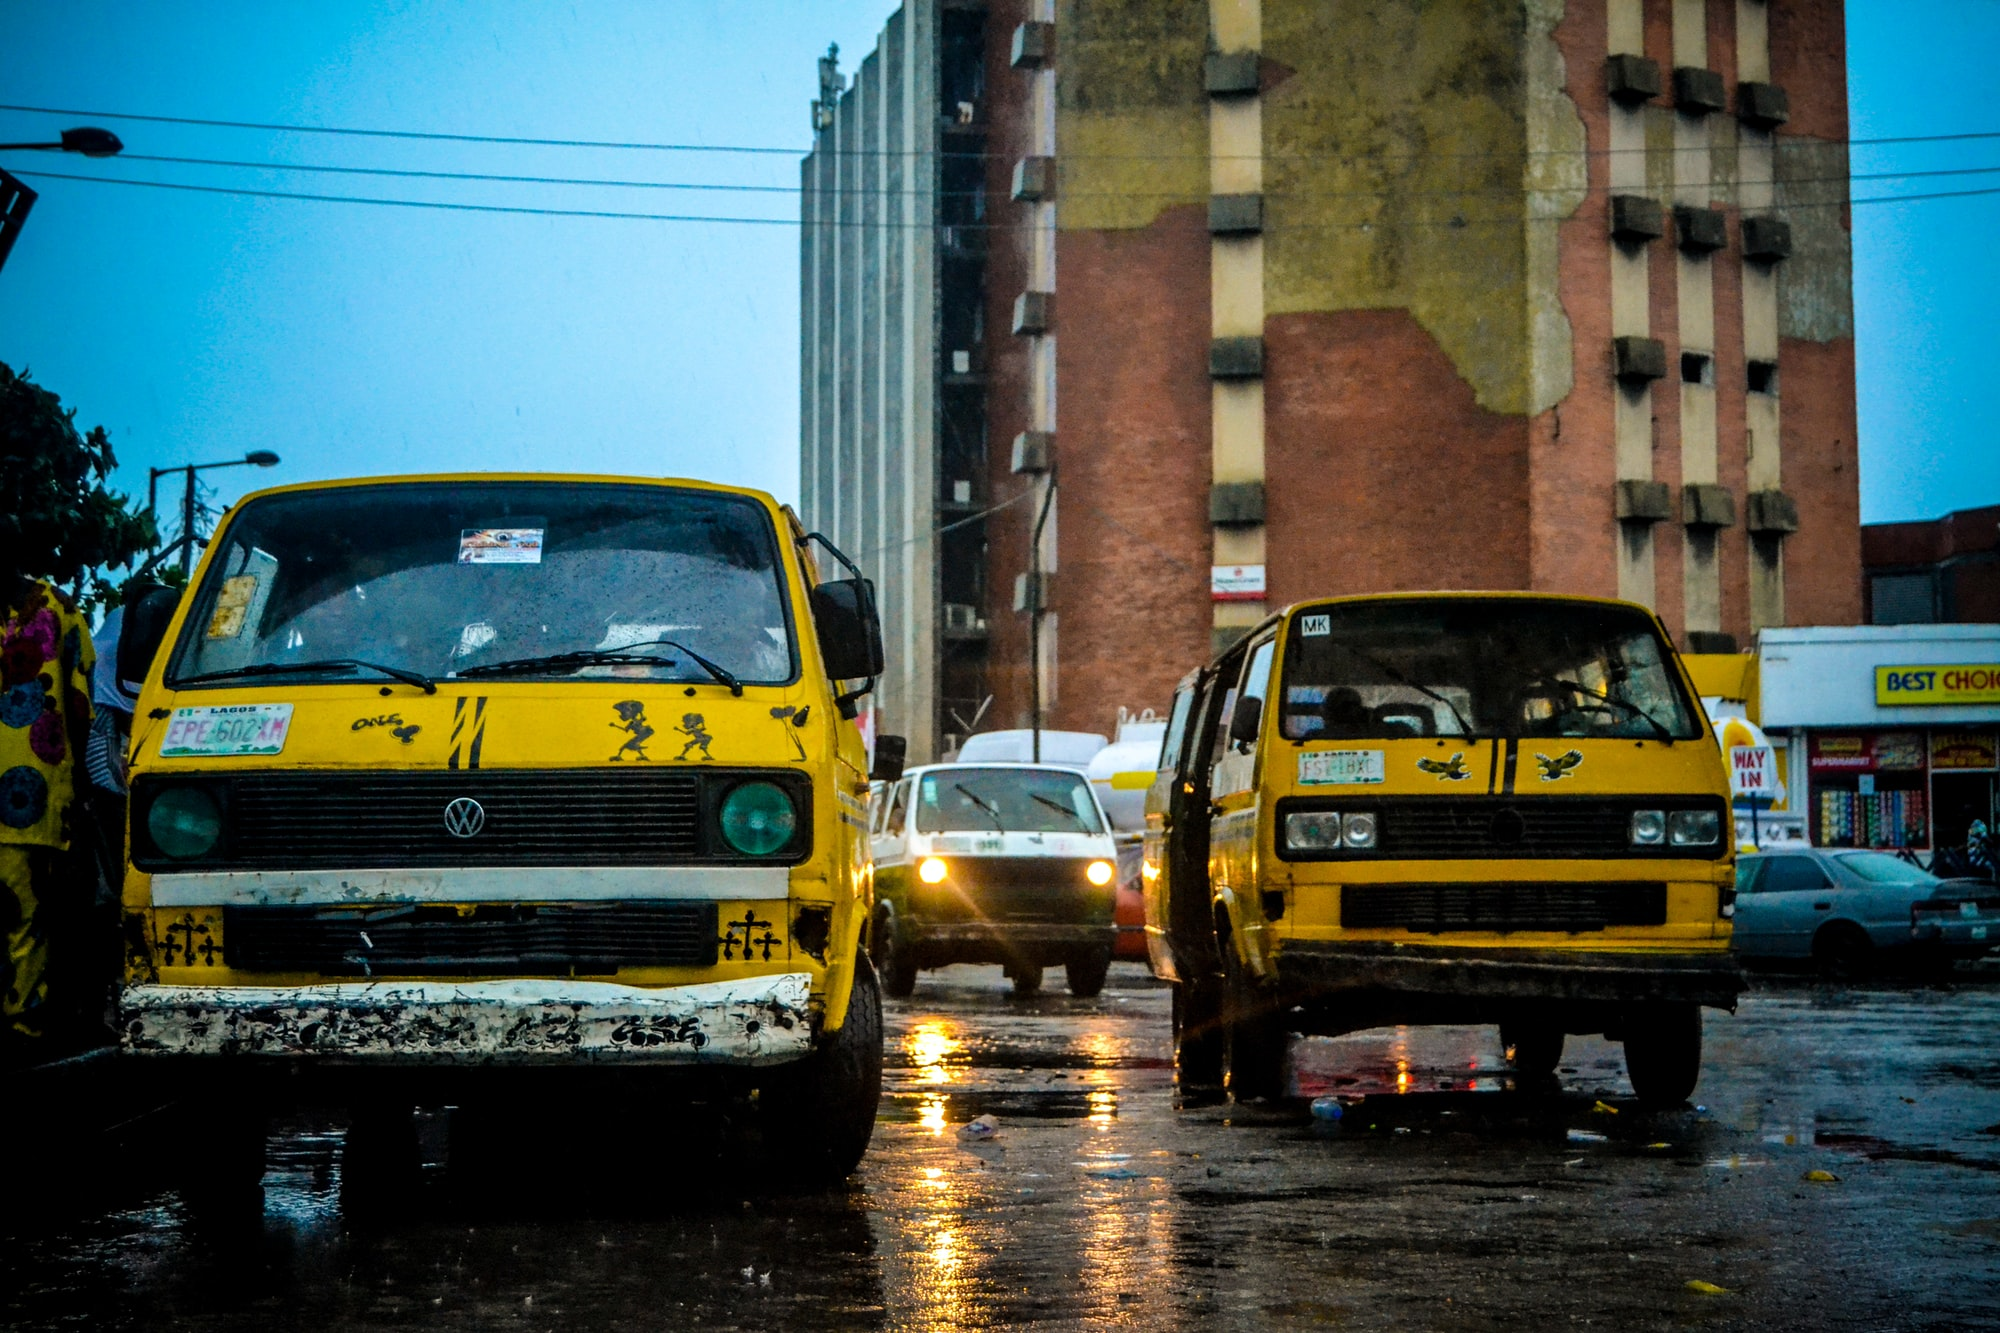 Danfo, a public means of transportation in Lagos, Nigeria